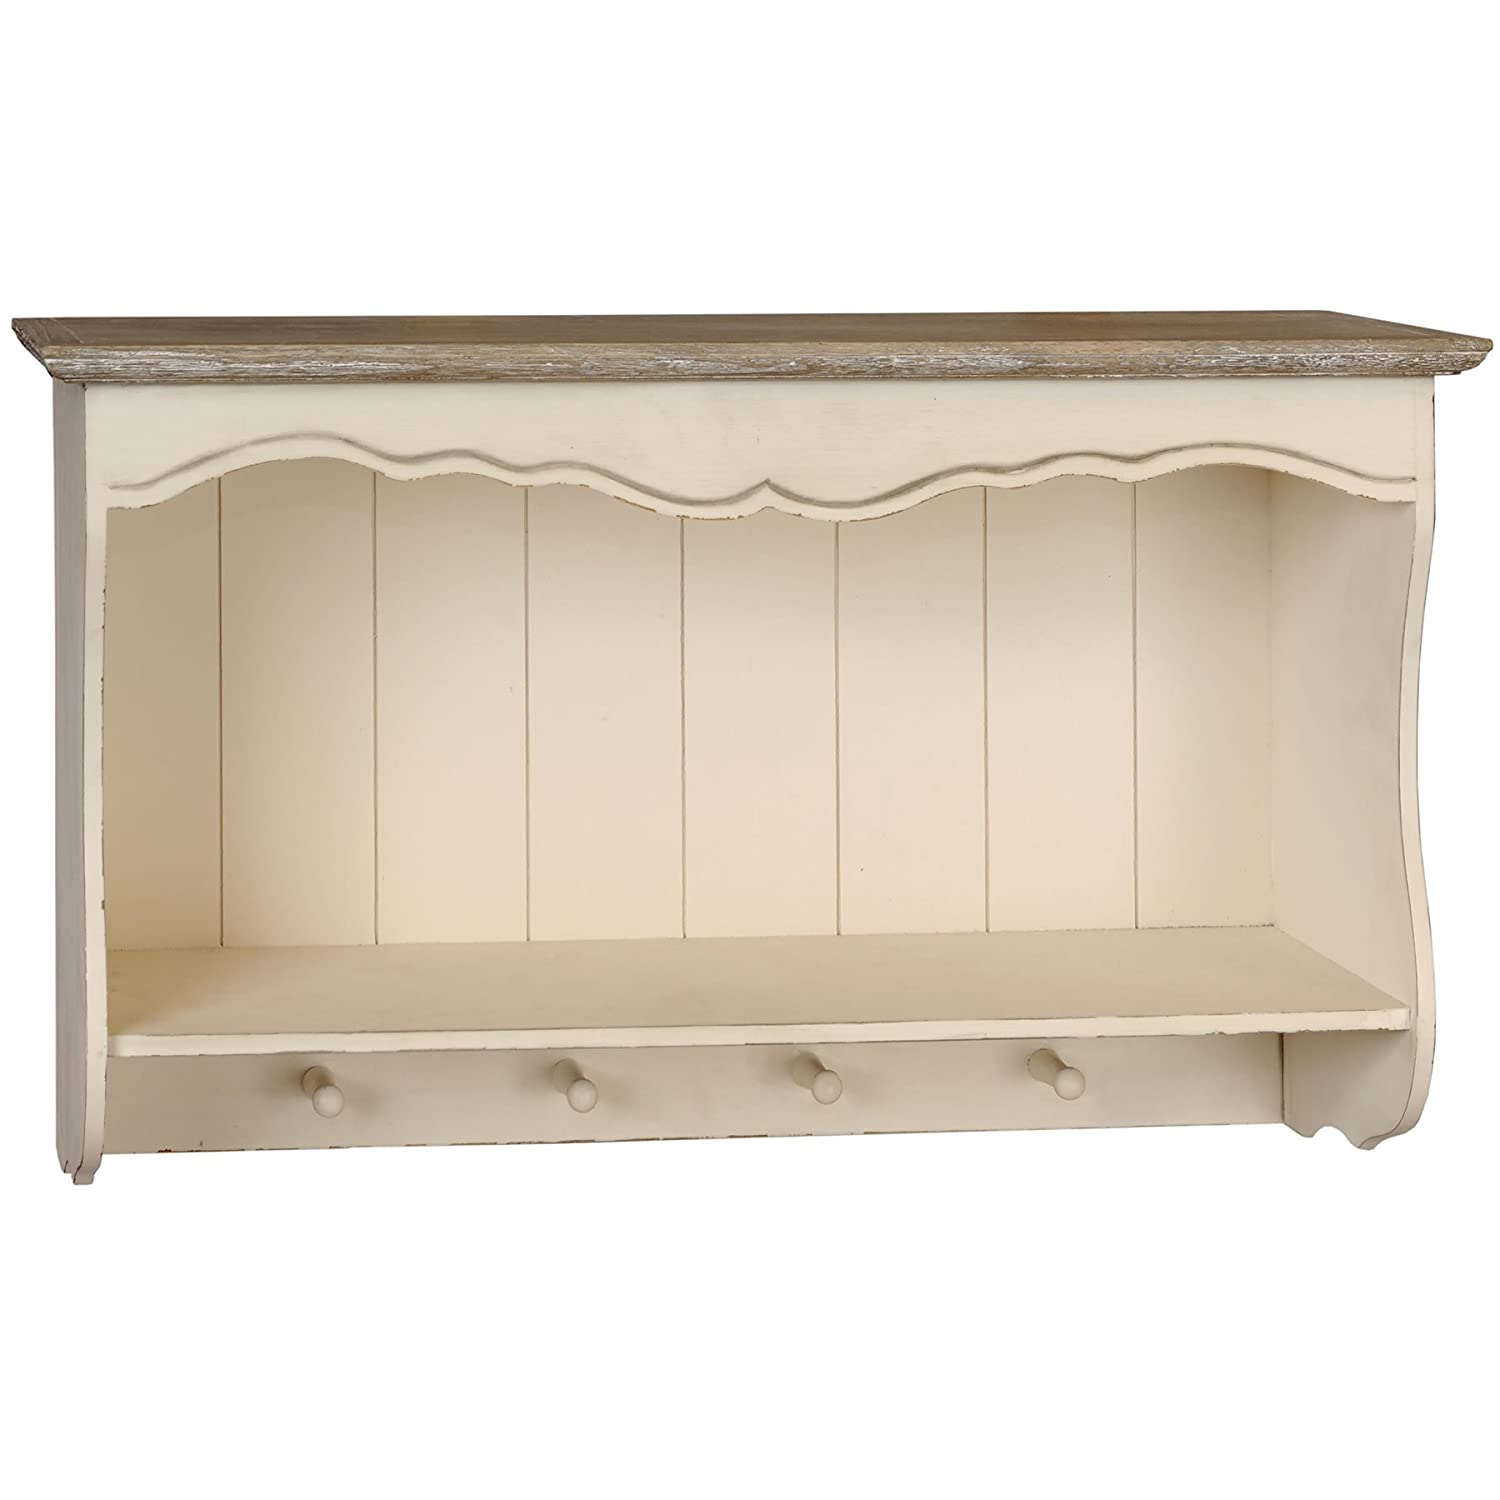 SHABBY CHIC FRENCH STYLE COUNTRY WALL SHELF UNIT WITH HANGING HOOKS ...